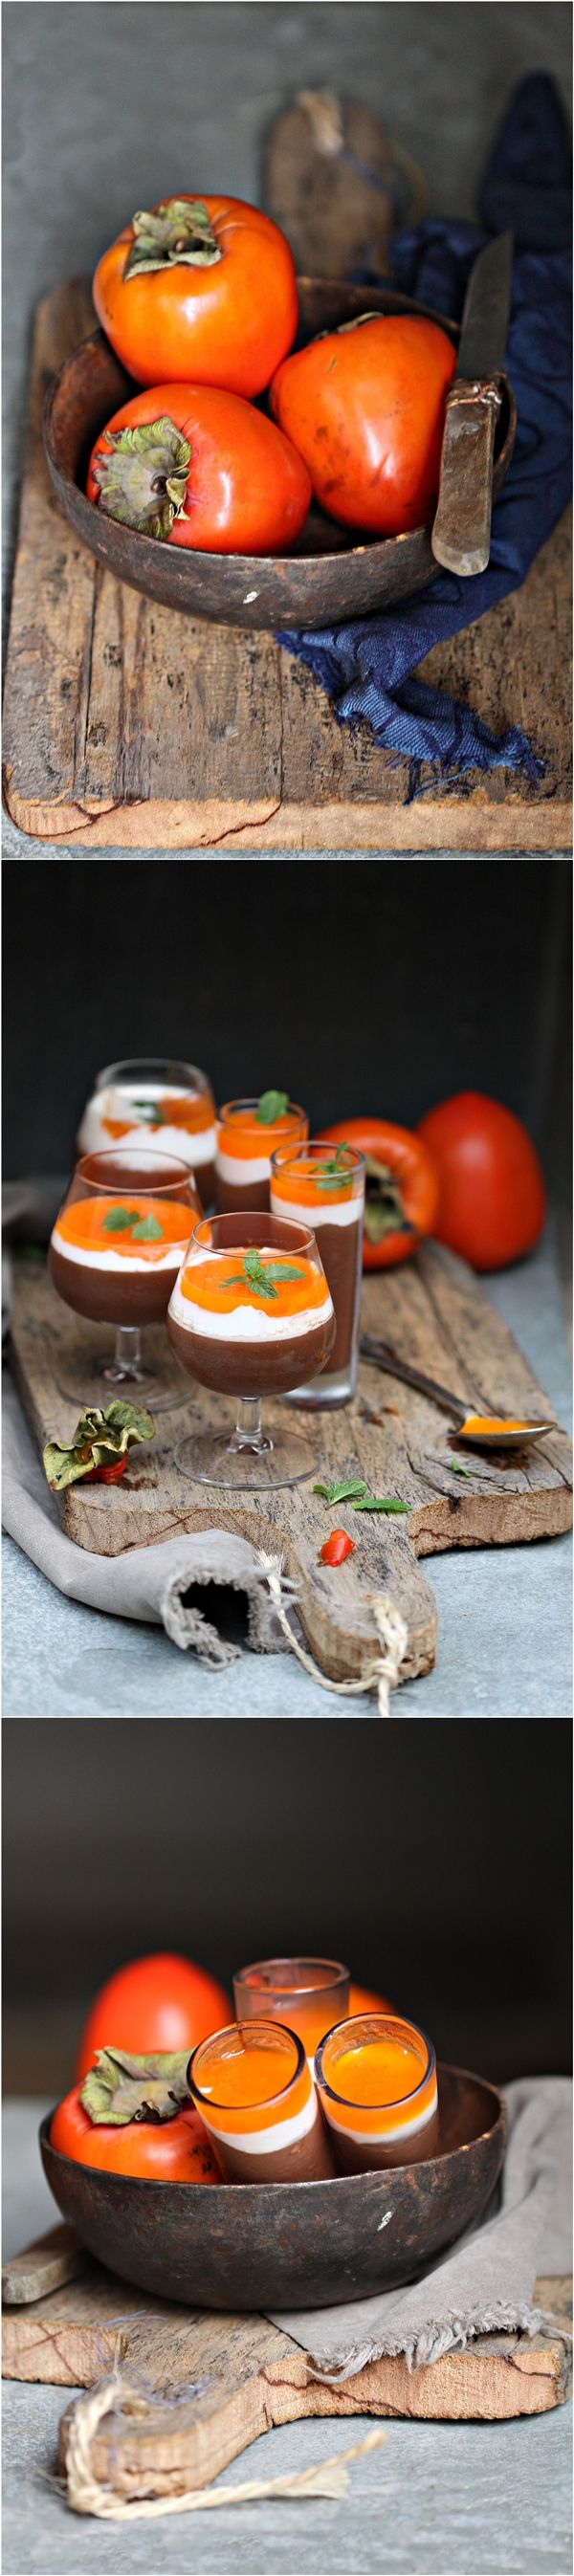 """Dark Chocolate & Persimmon Mousse  """"If it be not ripe, it will draw a man's mouth awry, with much torment, but when it is ripe, it is as delicious as an apricot."""""""